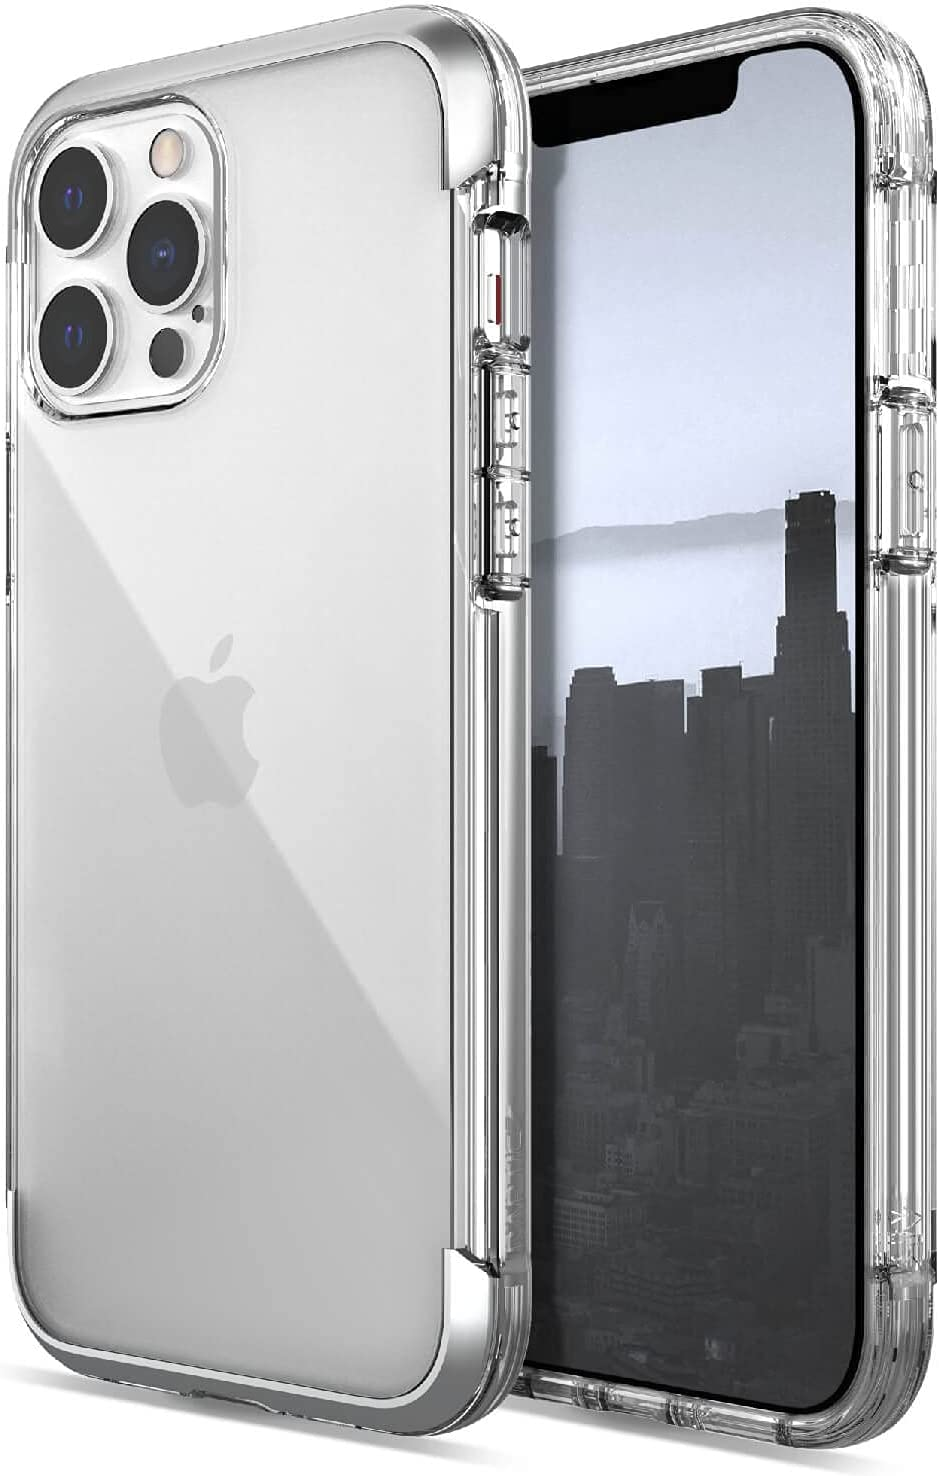 Raptic Air Case Compatible with iPhone 13 Pro Max Case, Scratch Resistant, Aluminum Metal Bumper, Wireless Charging, 13ft Drop Protection, Fits iPhone 13 Pro Max, Clear